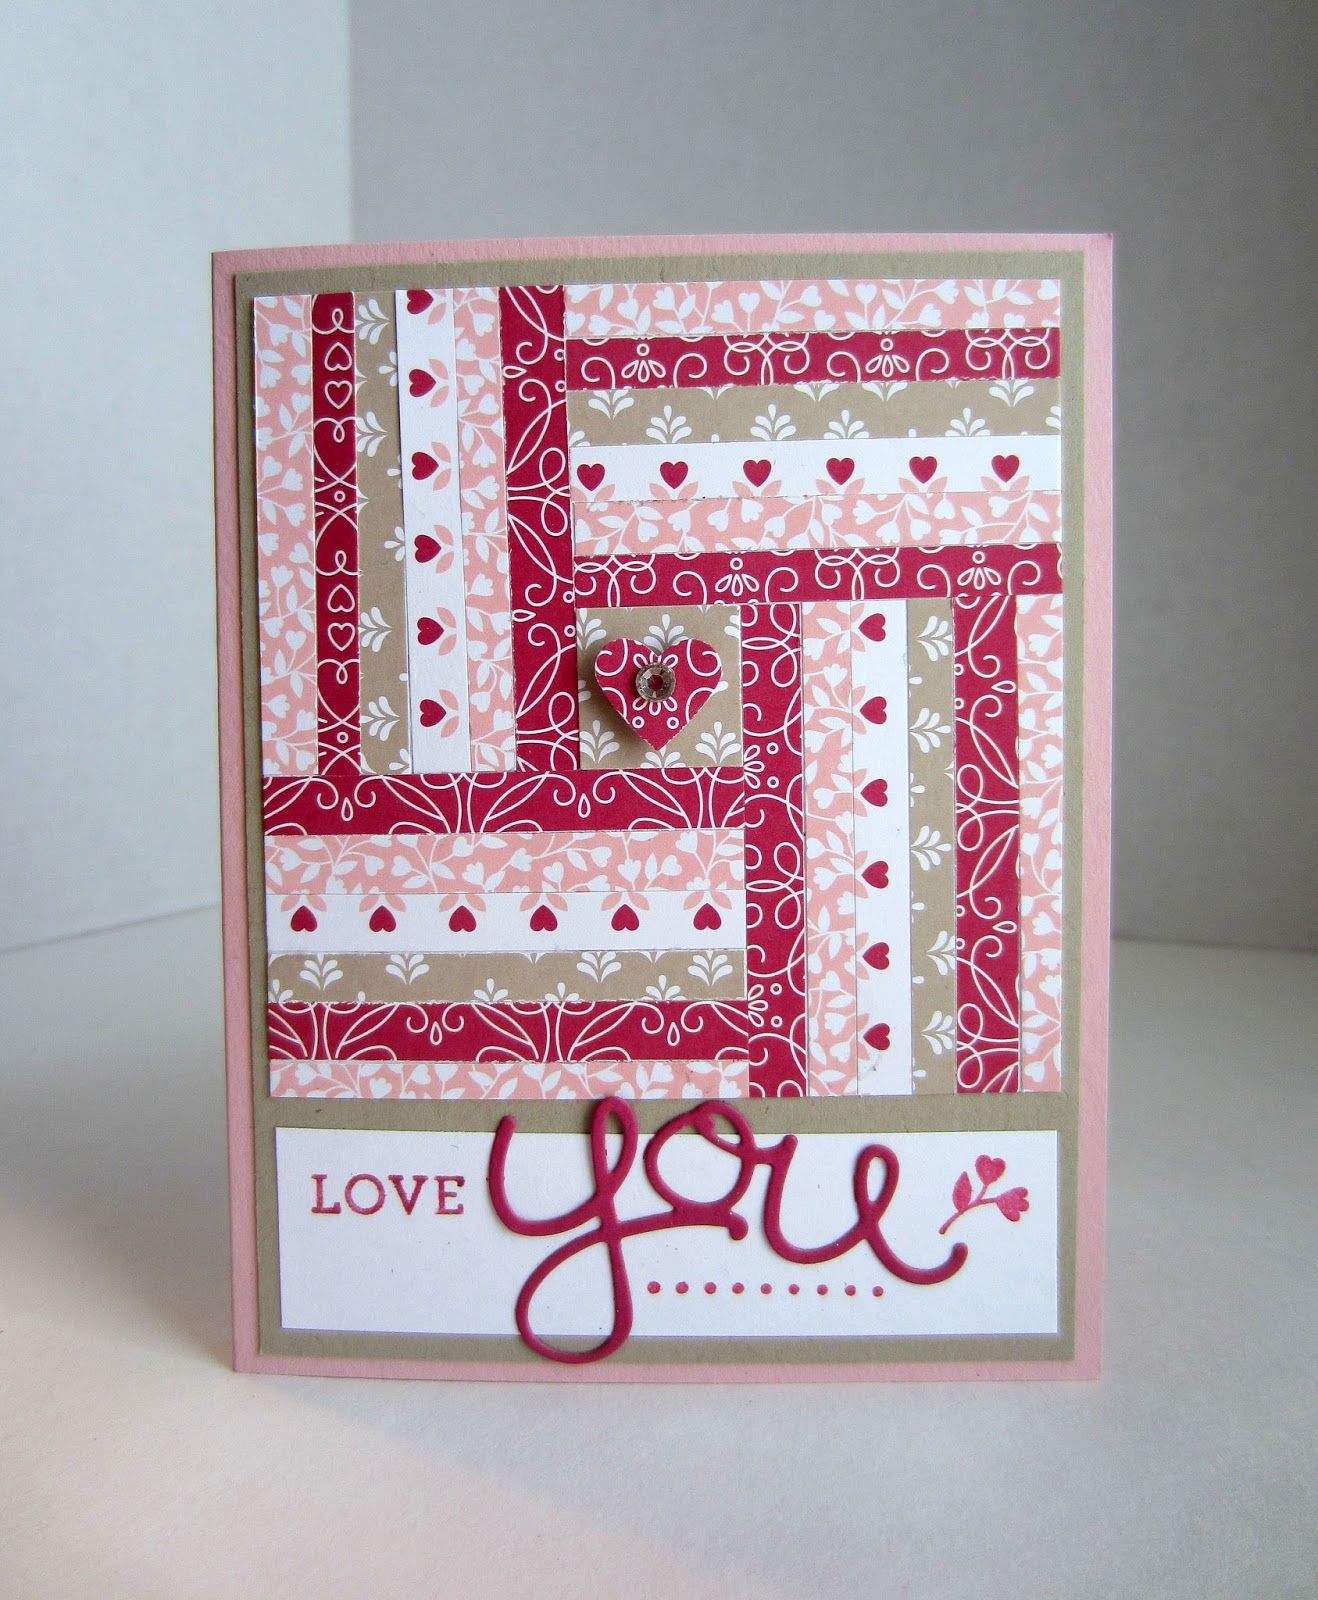 Handmade Valentine Quilt Card From Paper Seedlings Strips Of Pattered Form A